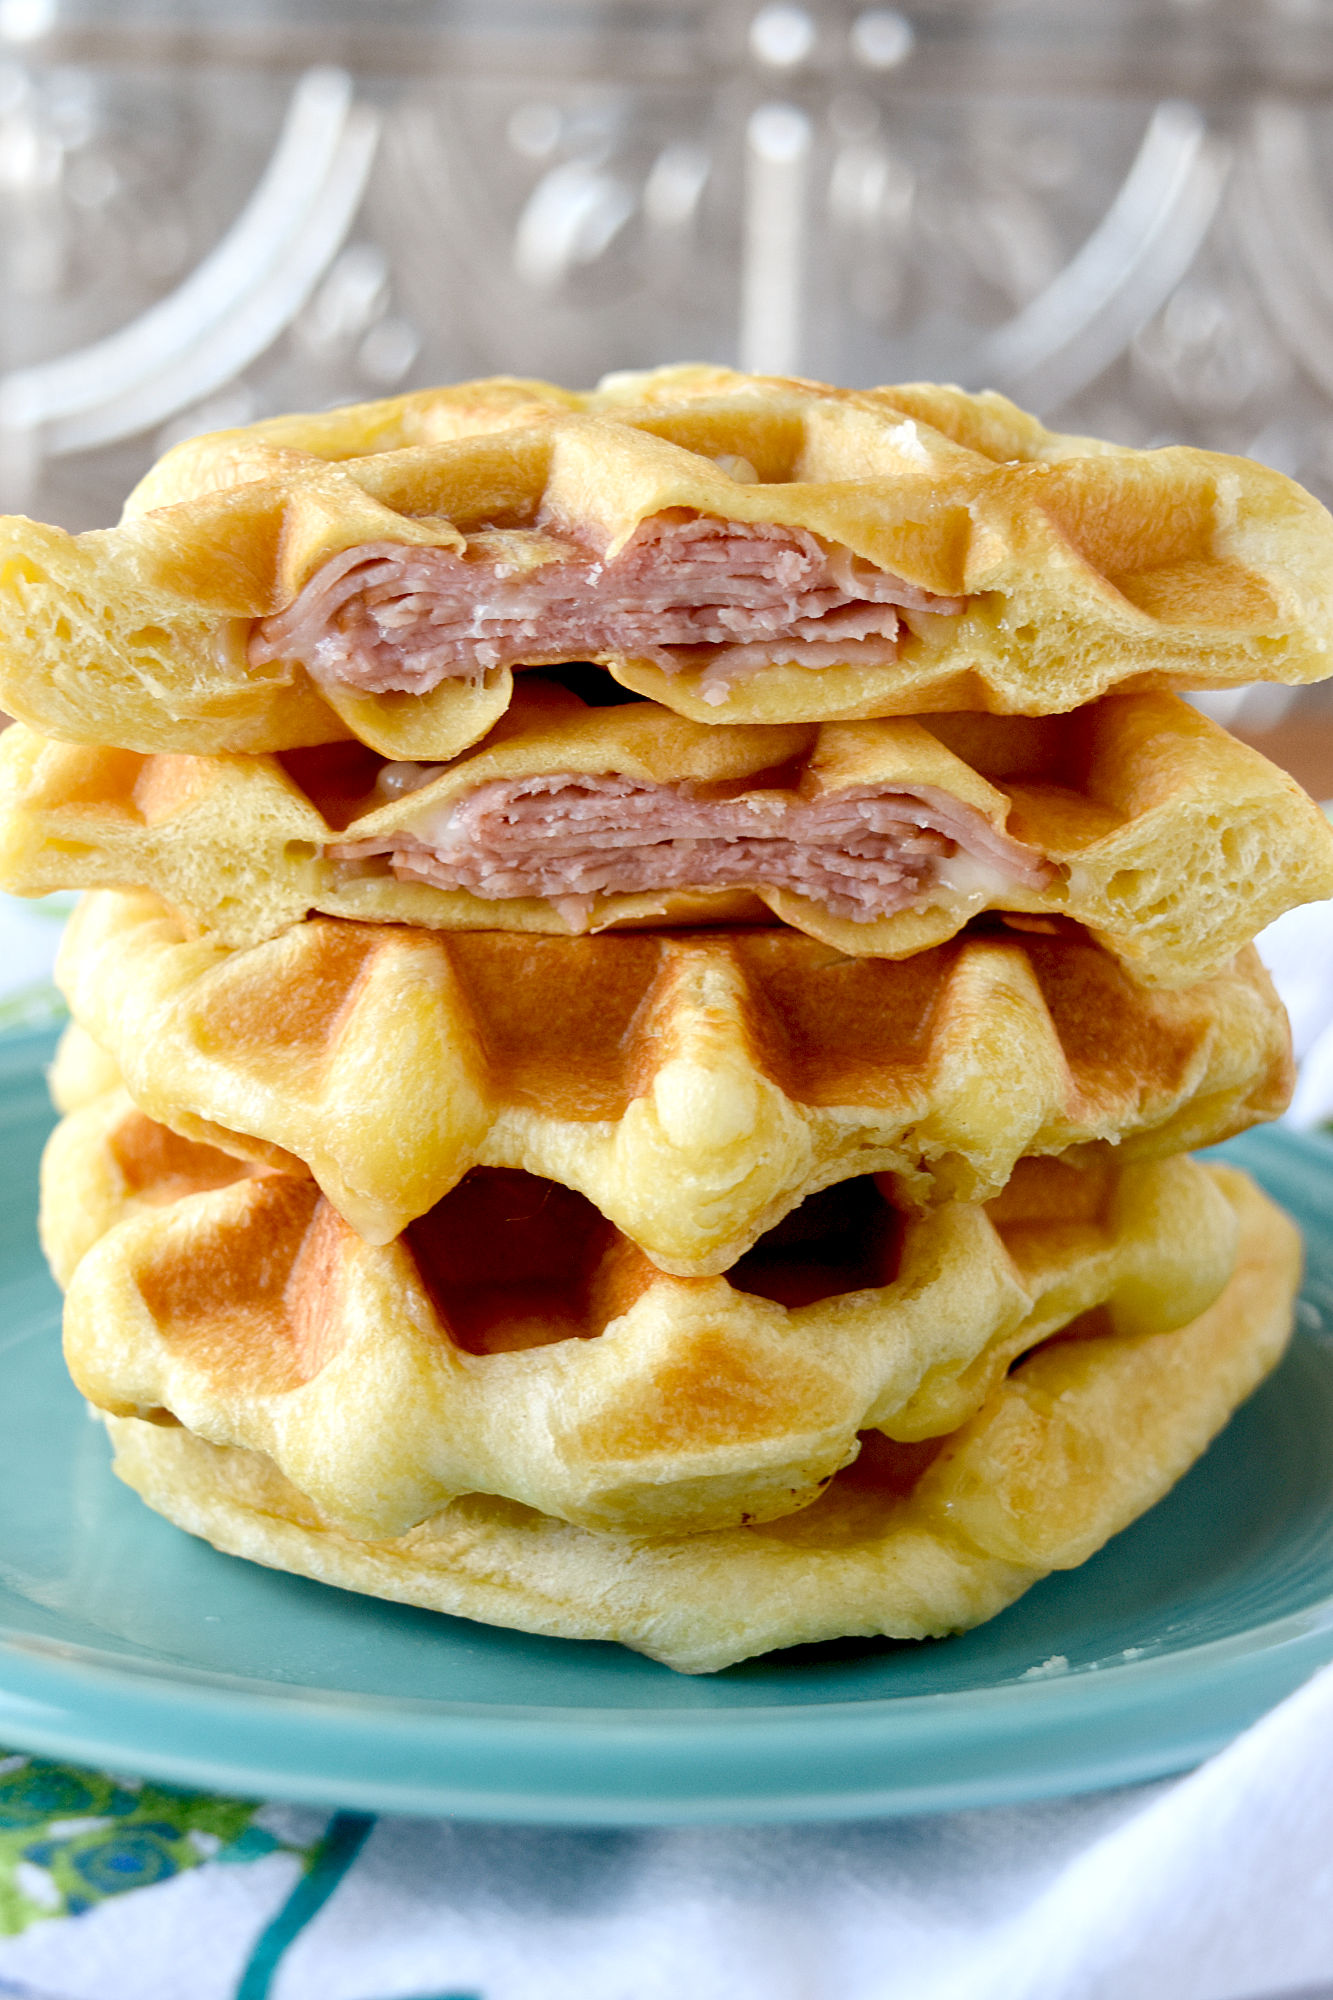 Waffle Biscuit Monte Cristo has only three ingredients and are easy for kids to make themselves. With simple ingredients and an easy technique, kids can make these for a snack or lunch any time they want.  #OurFamilyTable